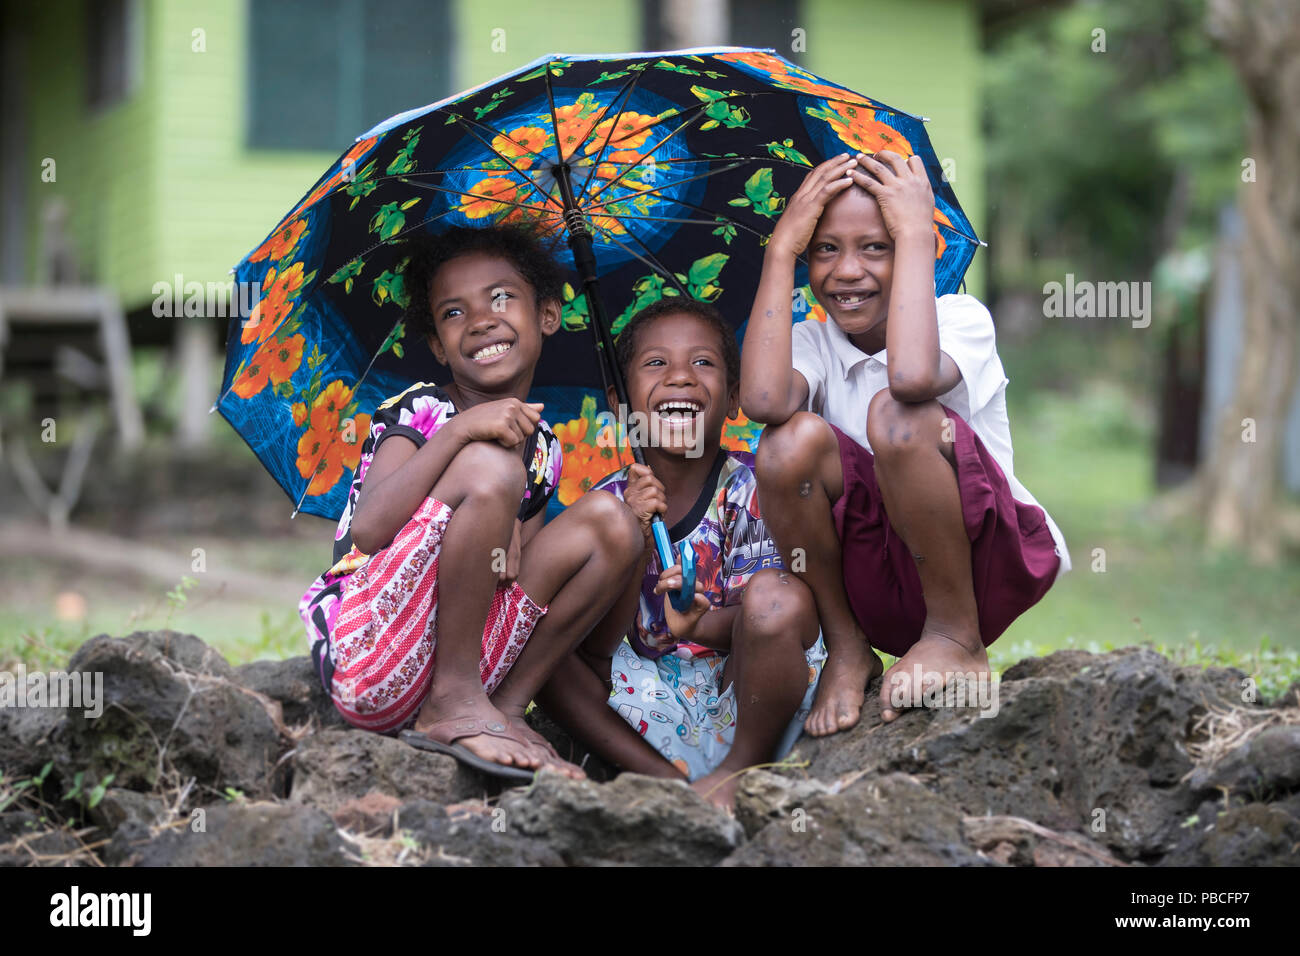 Three children sitting under an umbrella laughing together - Papua New Guinea - Stock Image